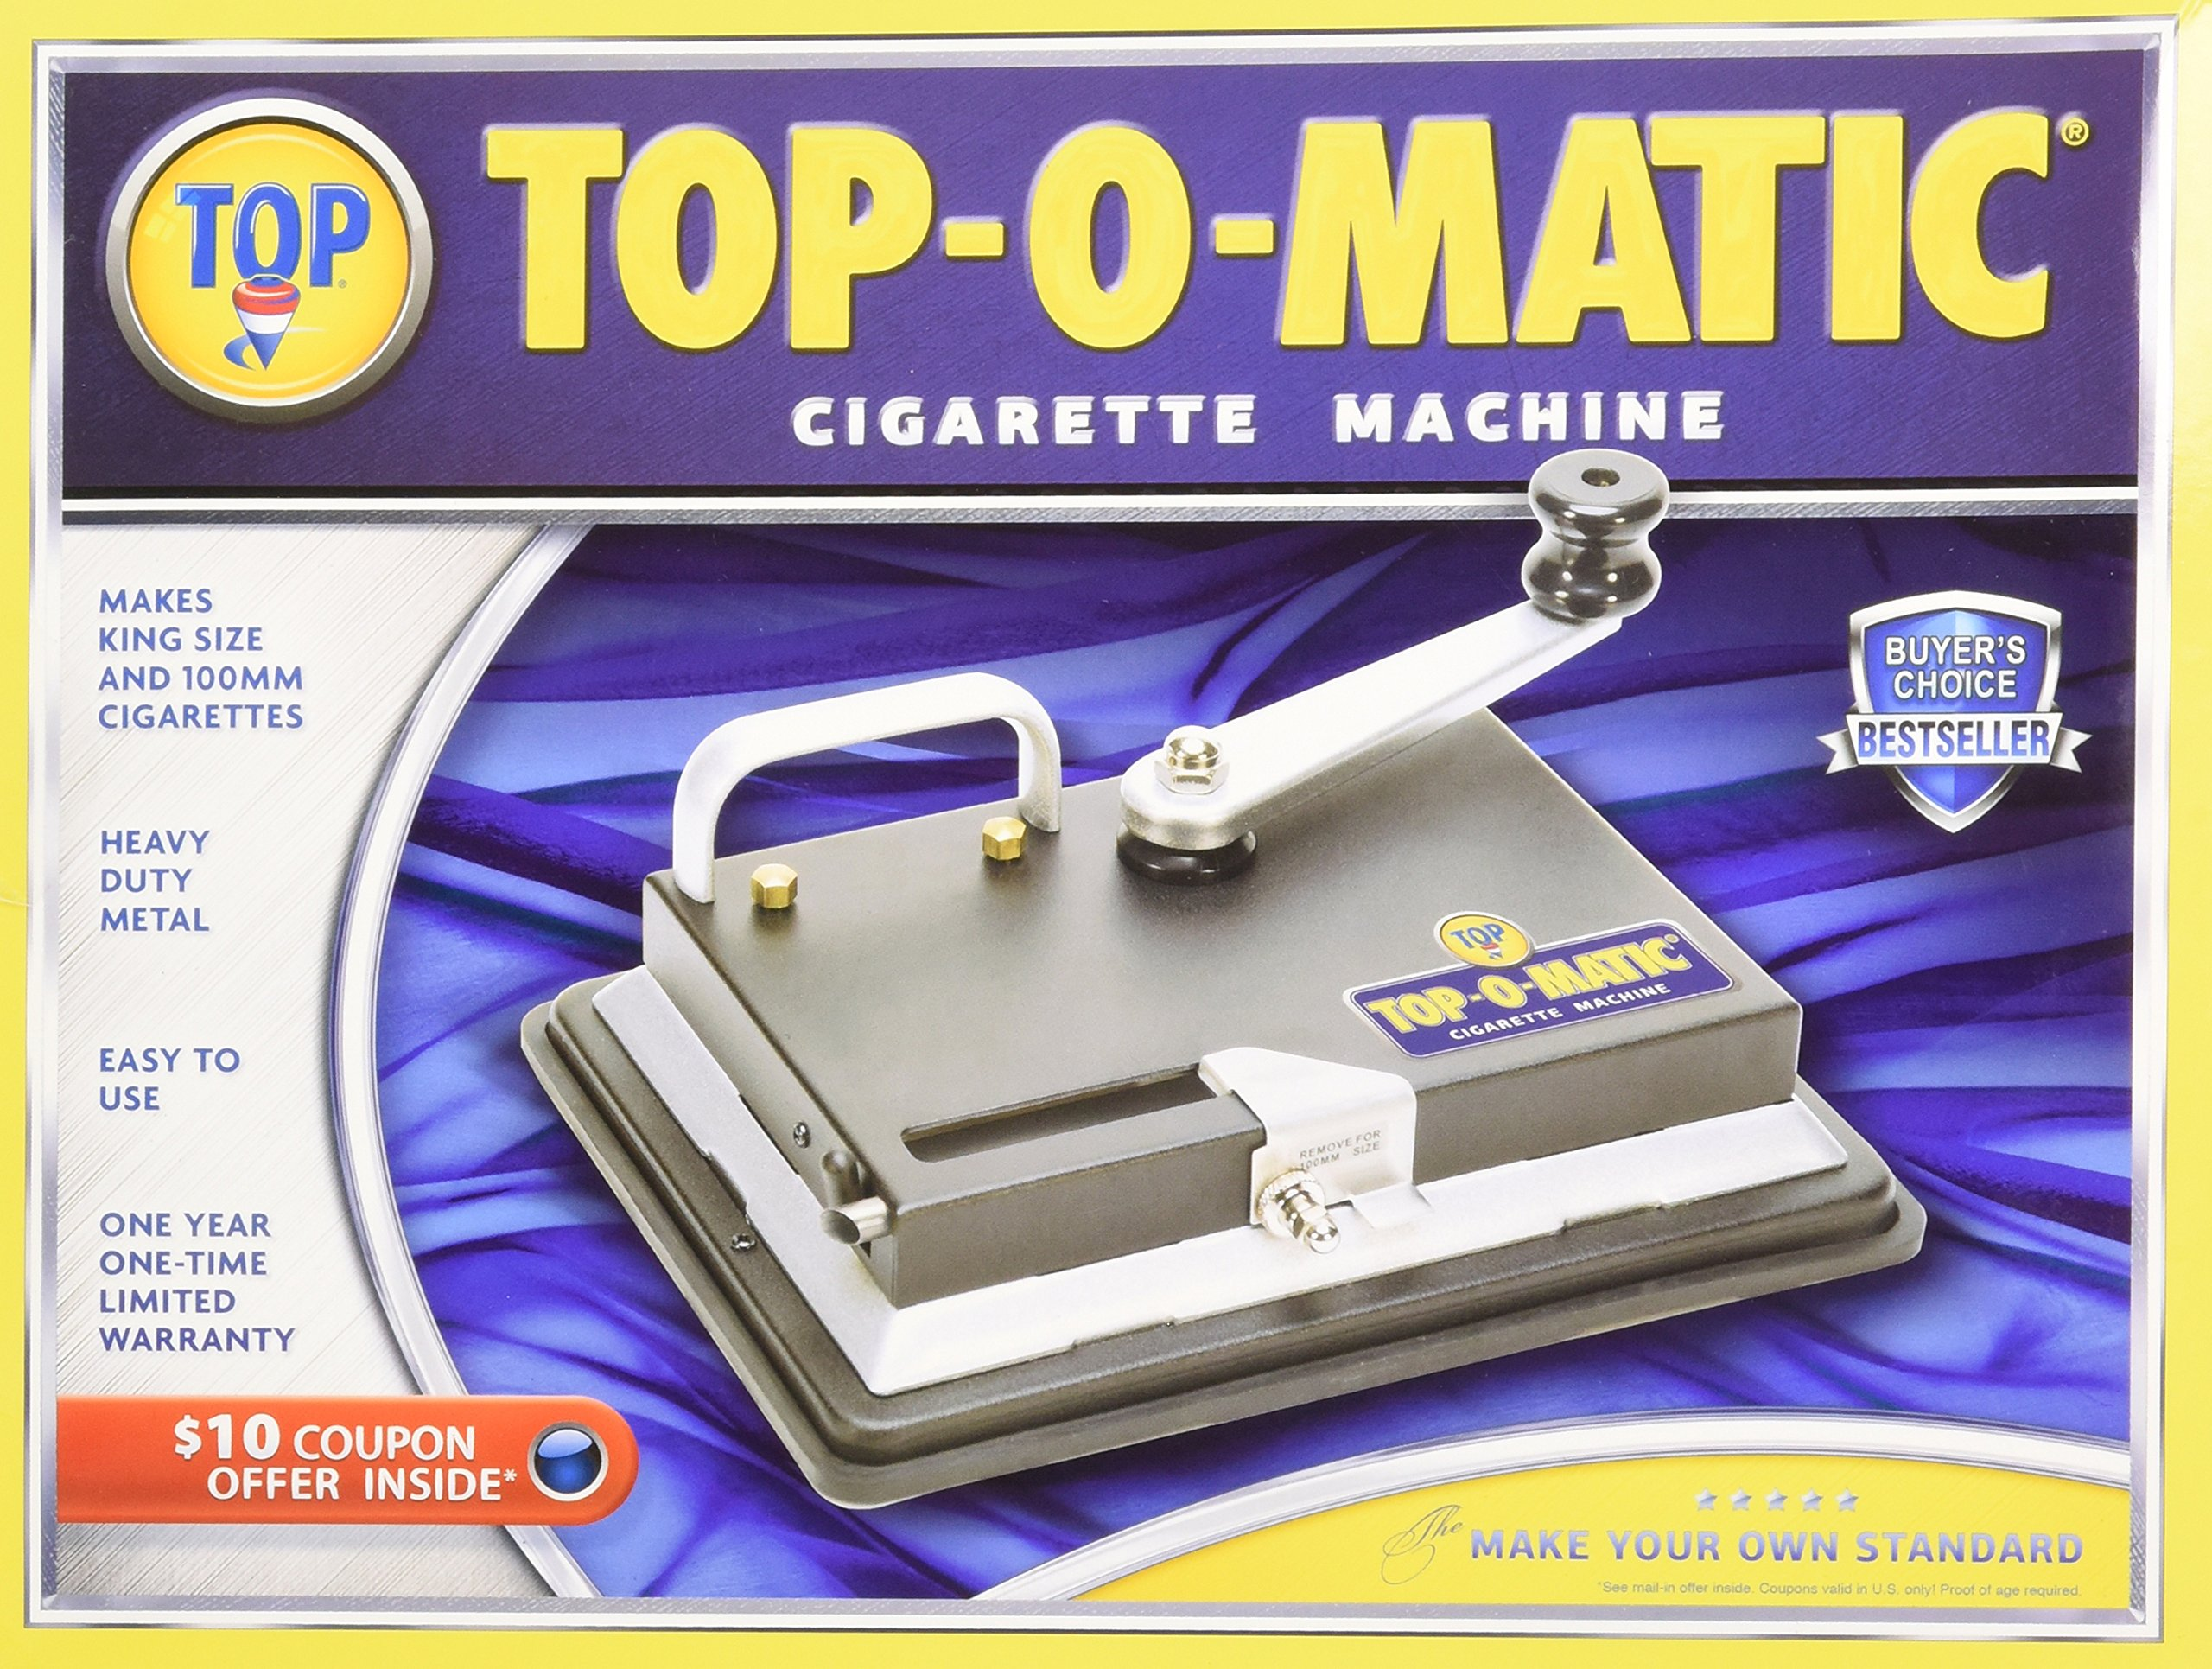 New Top O Matic Cigarette Rolling Machine Health Metal Conduit Is Tough Stuff But Its Heavy Hard To Work With And Personal Care